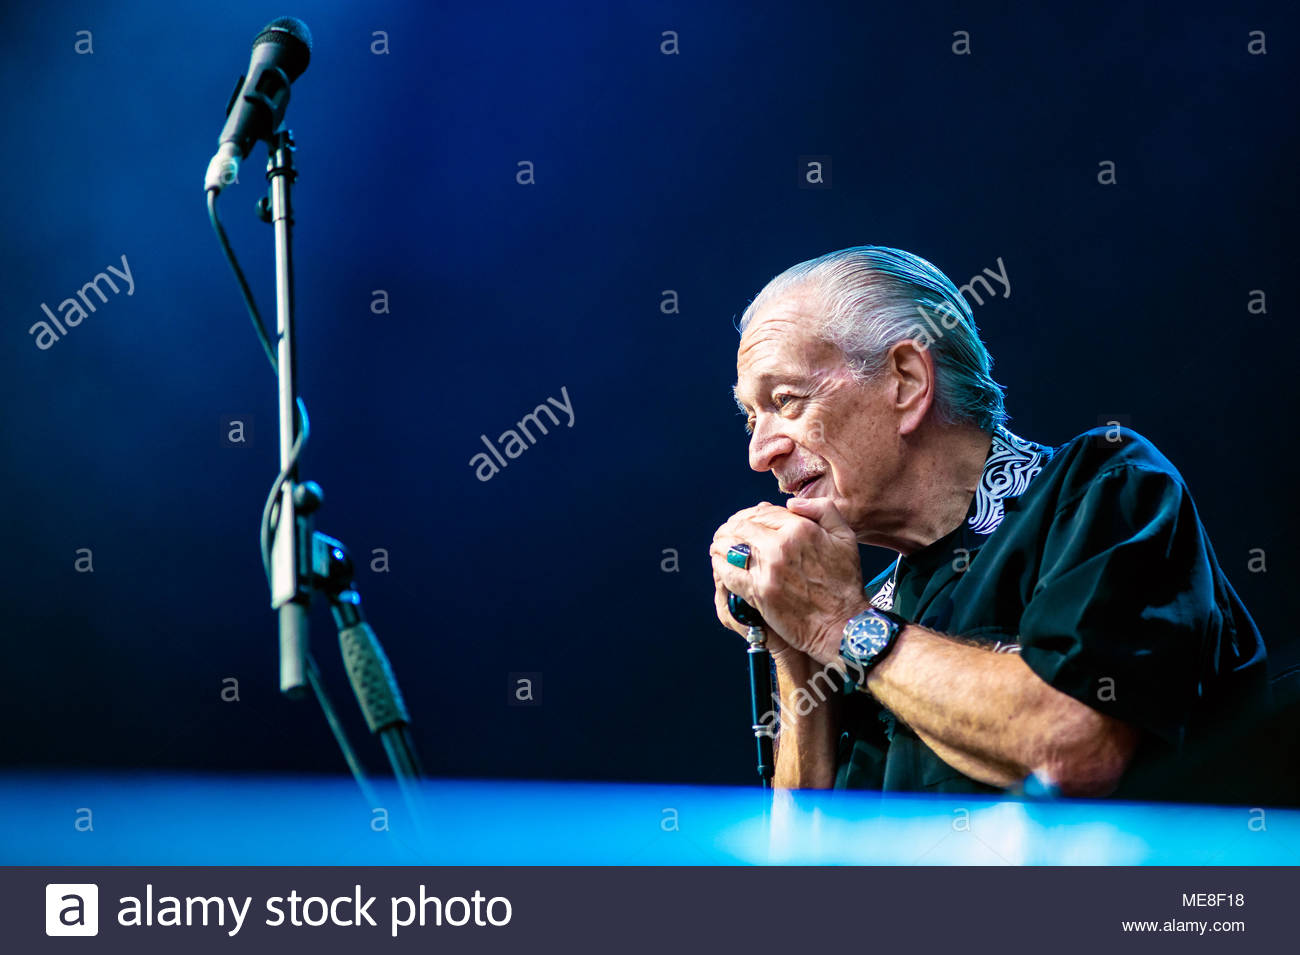 Chamonix, France, 21 April 2018. Charlie Musselwhite performing live (with Ben Harper) at at MUSILAC Mont-Blanc festival in Chamonix (France) - 21 april 2018 Credit: Olivier Parent/Alamy Live News - Stock Image